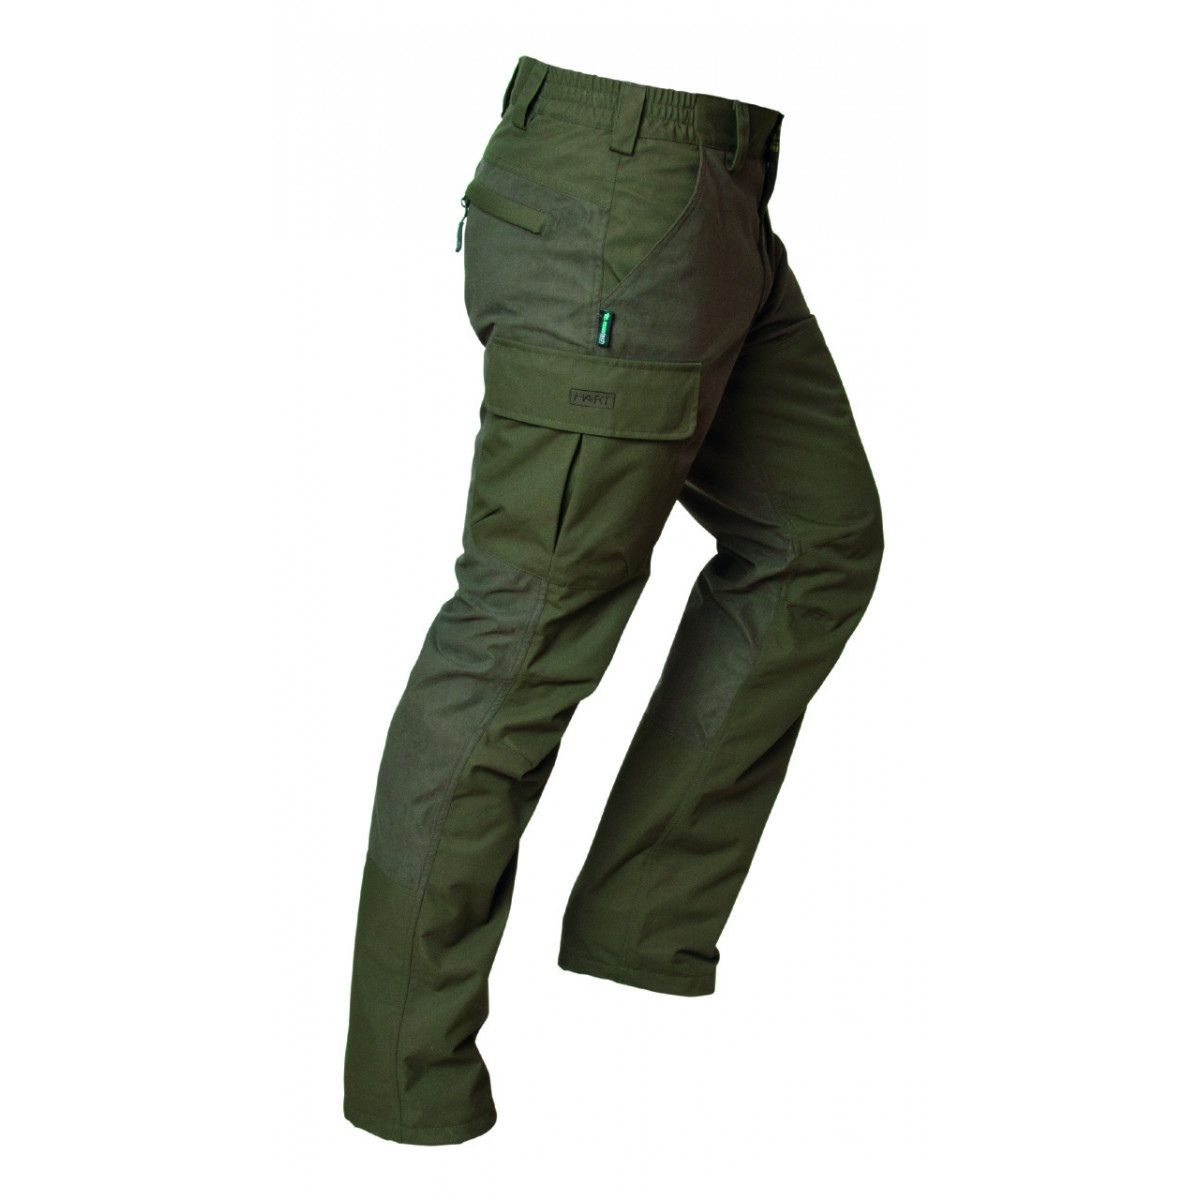 2b16dc75634e9 best hunting pants best hunting pants for cold weather best hunting pants  for briars best hunting pants for elk best hunting pants 2016 best hunting  pants ...